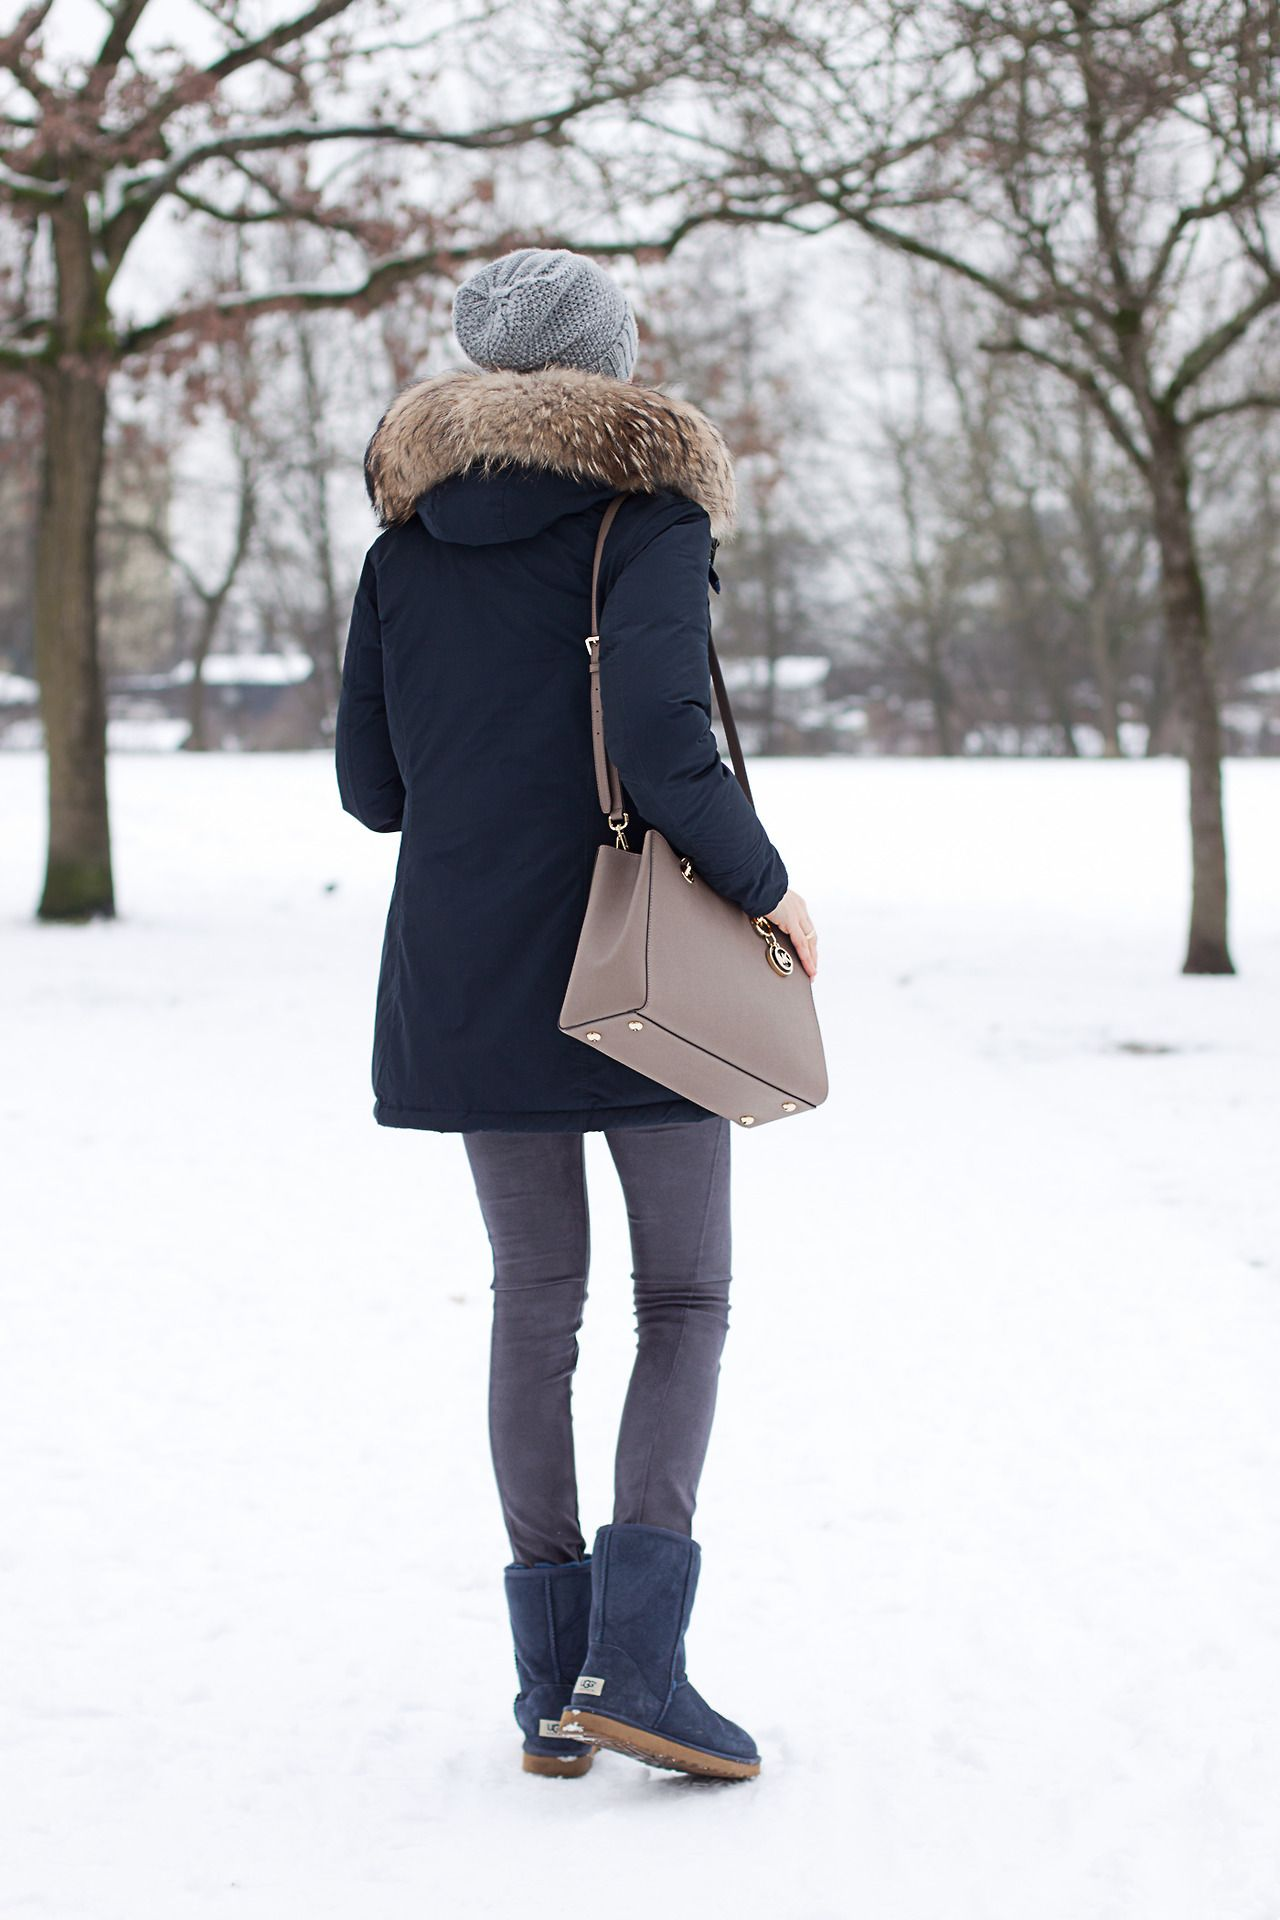 uggbootshut on | Ugg boots outfit, Classic fashion trends